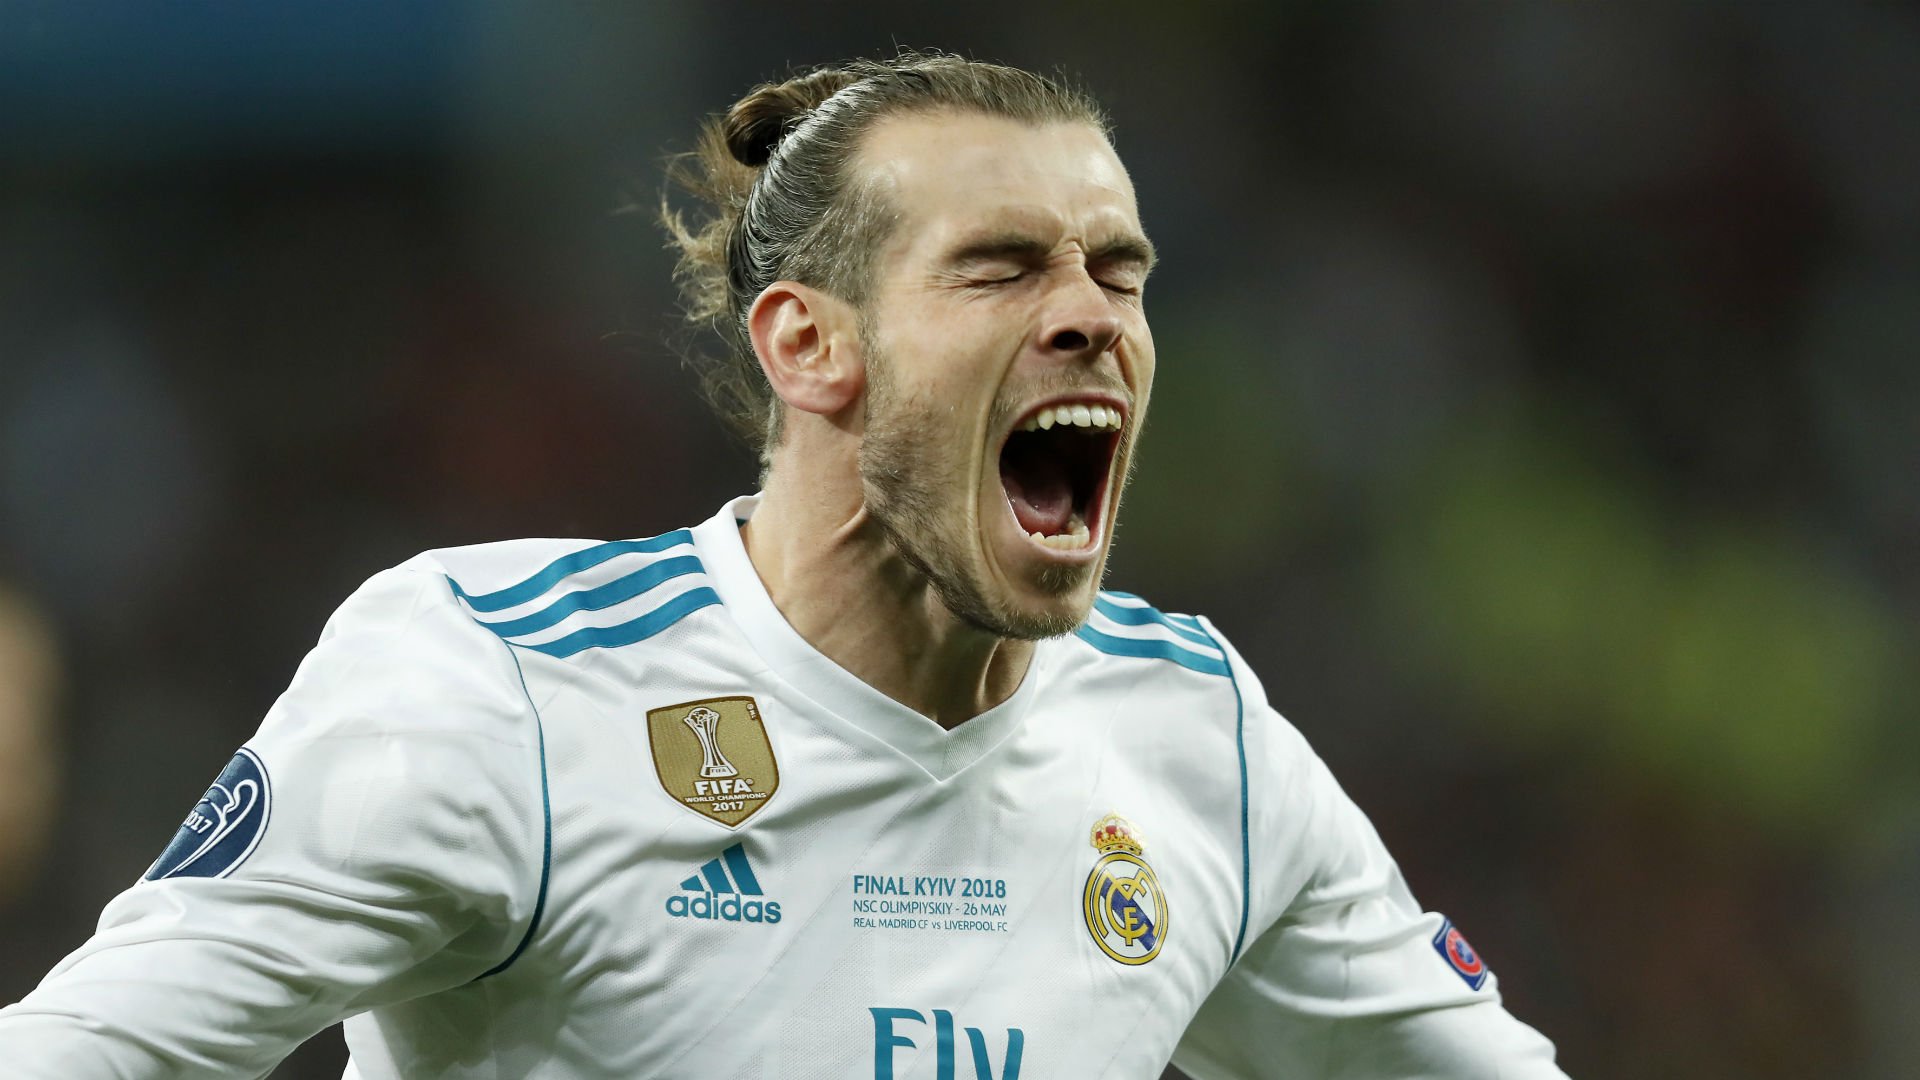 Bale to Tottenham: A spent force, or more to give?